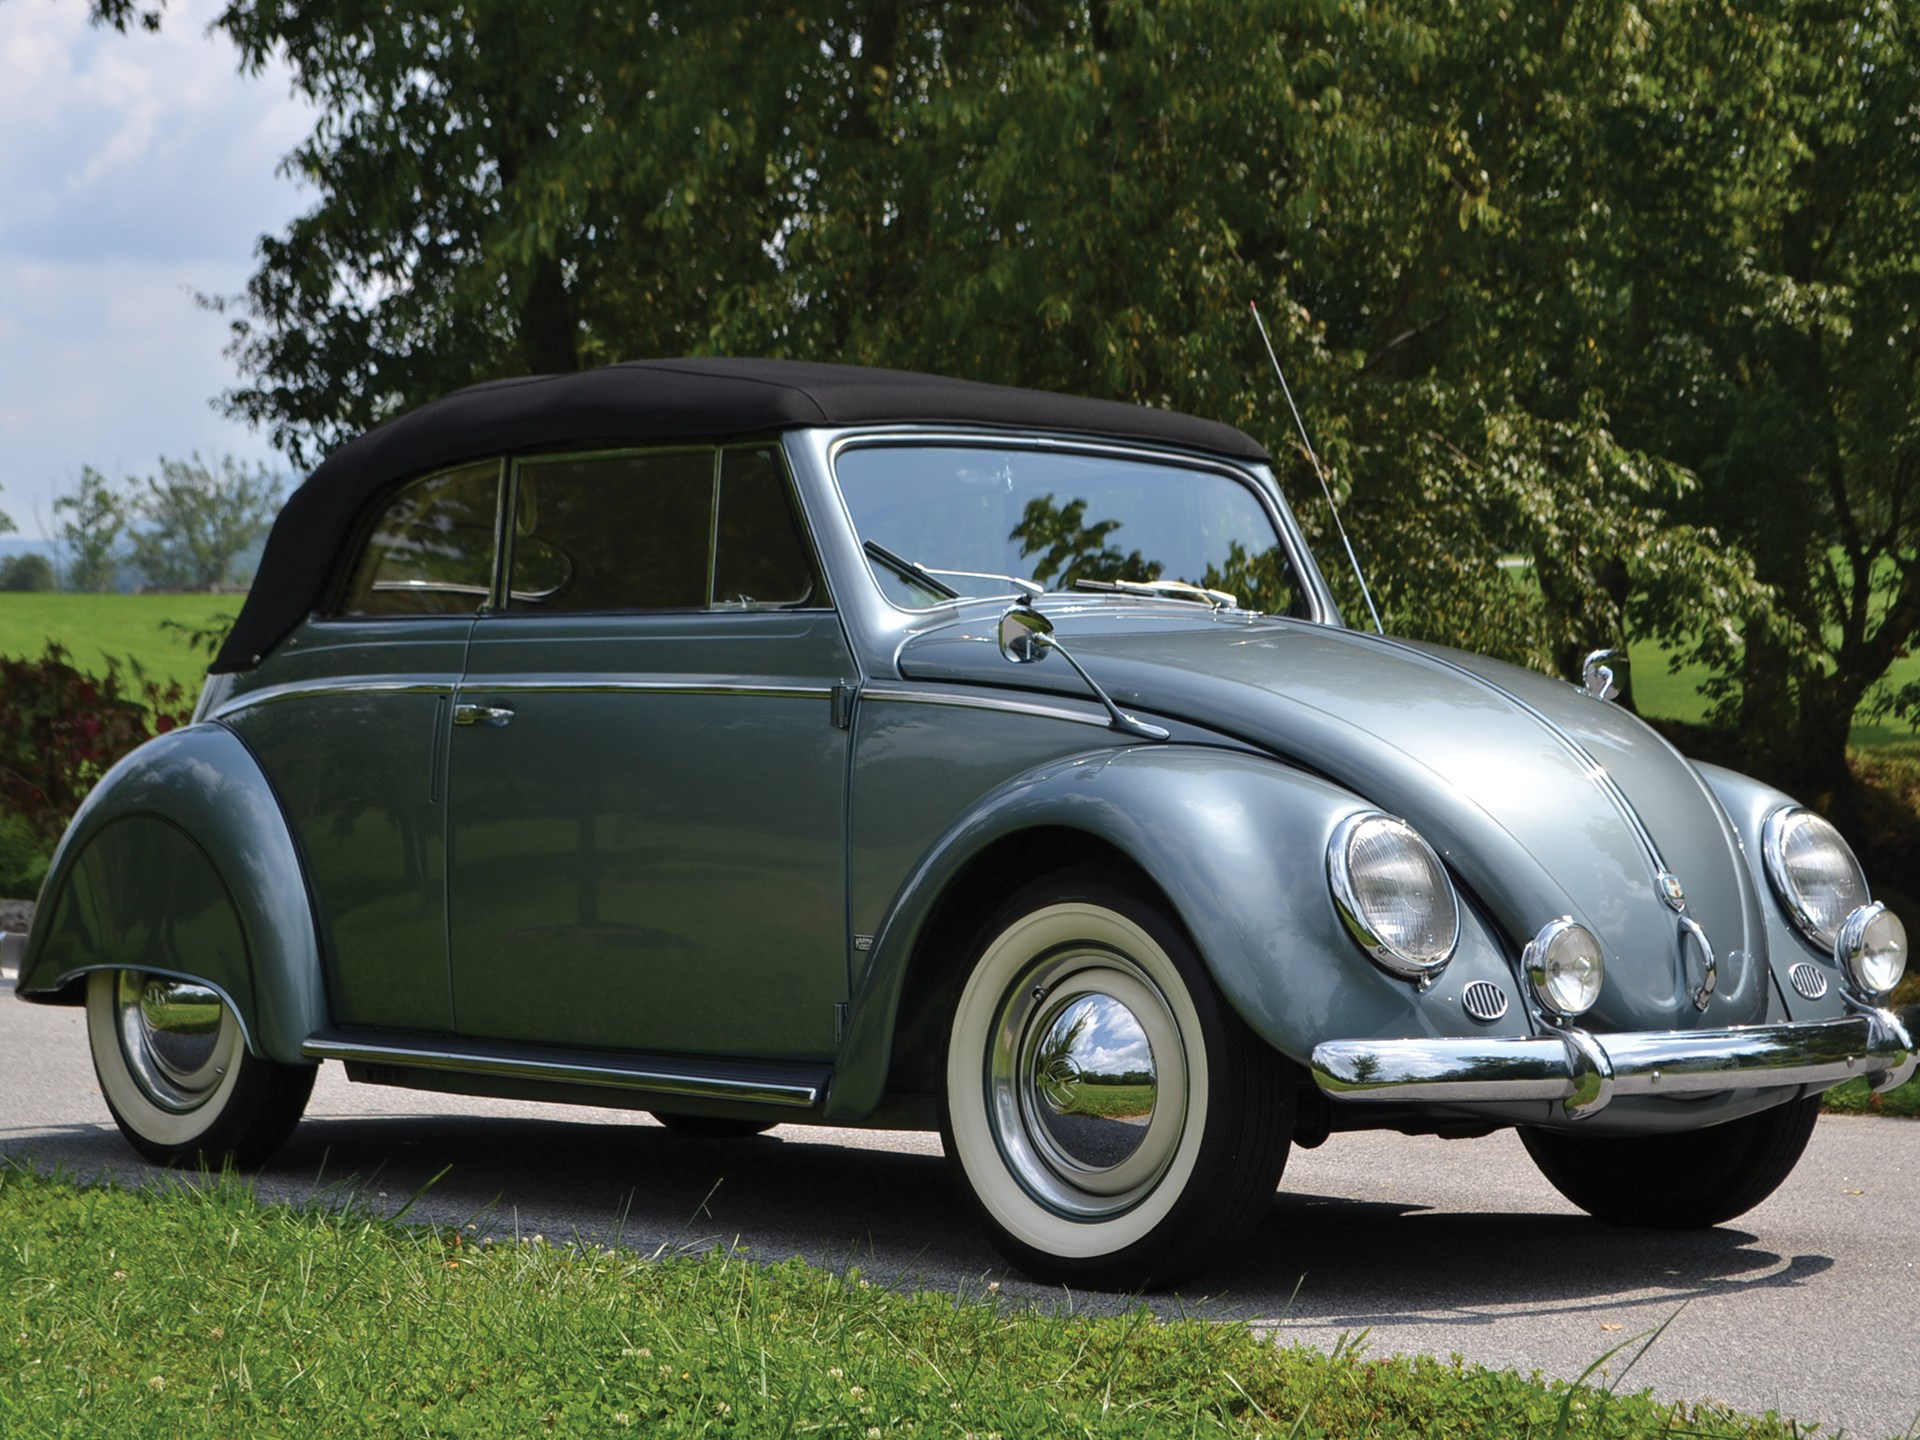 RM Sotheby's - 1955 Volkswagen Beetle Cabriolet by Karmann | Amelia